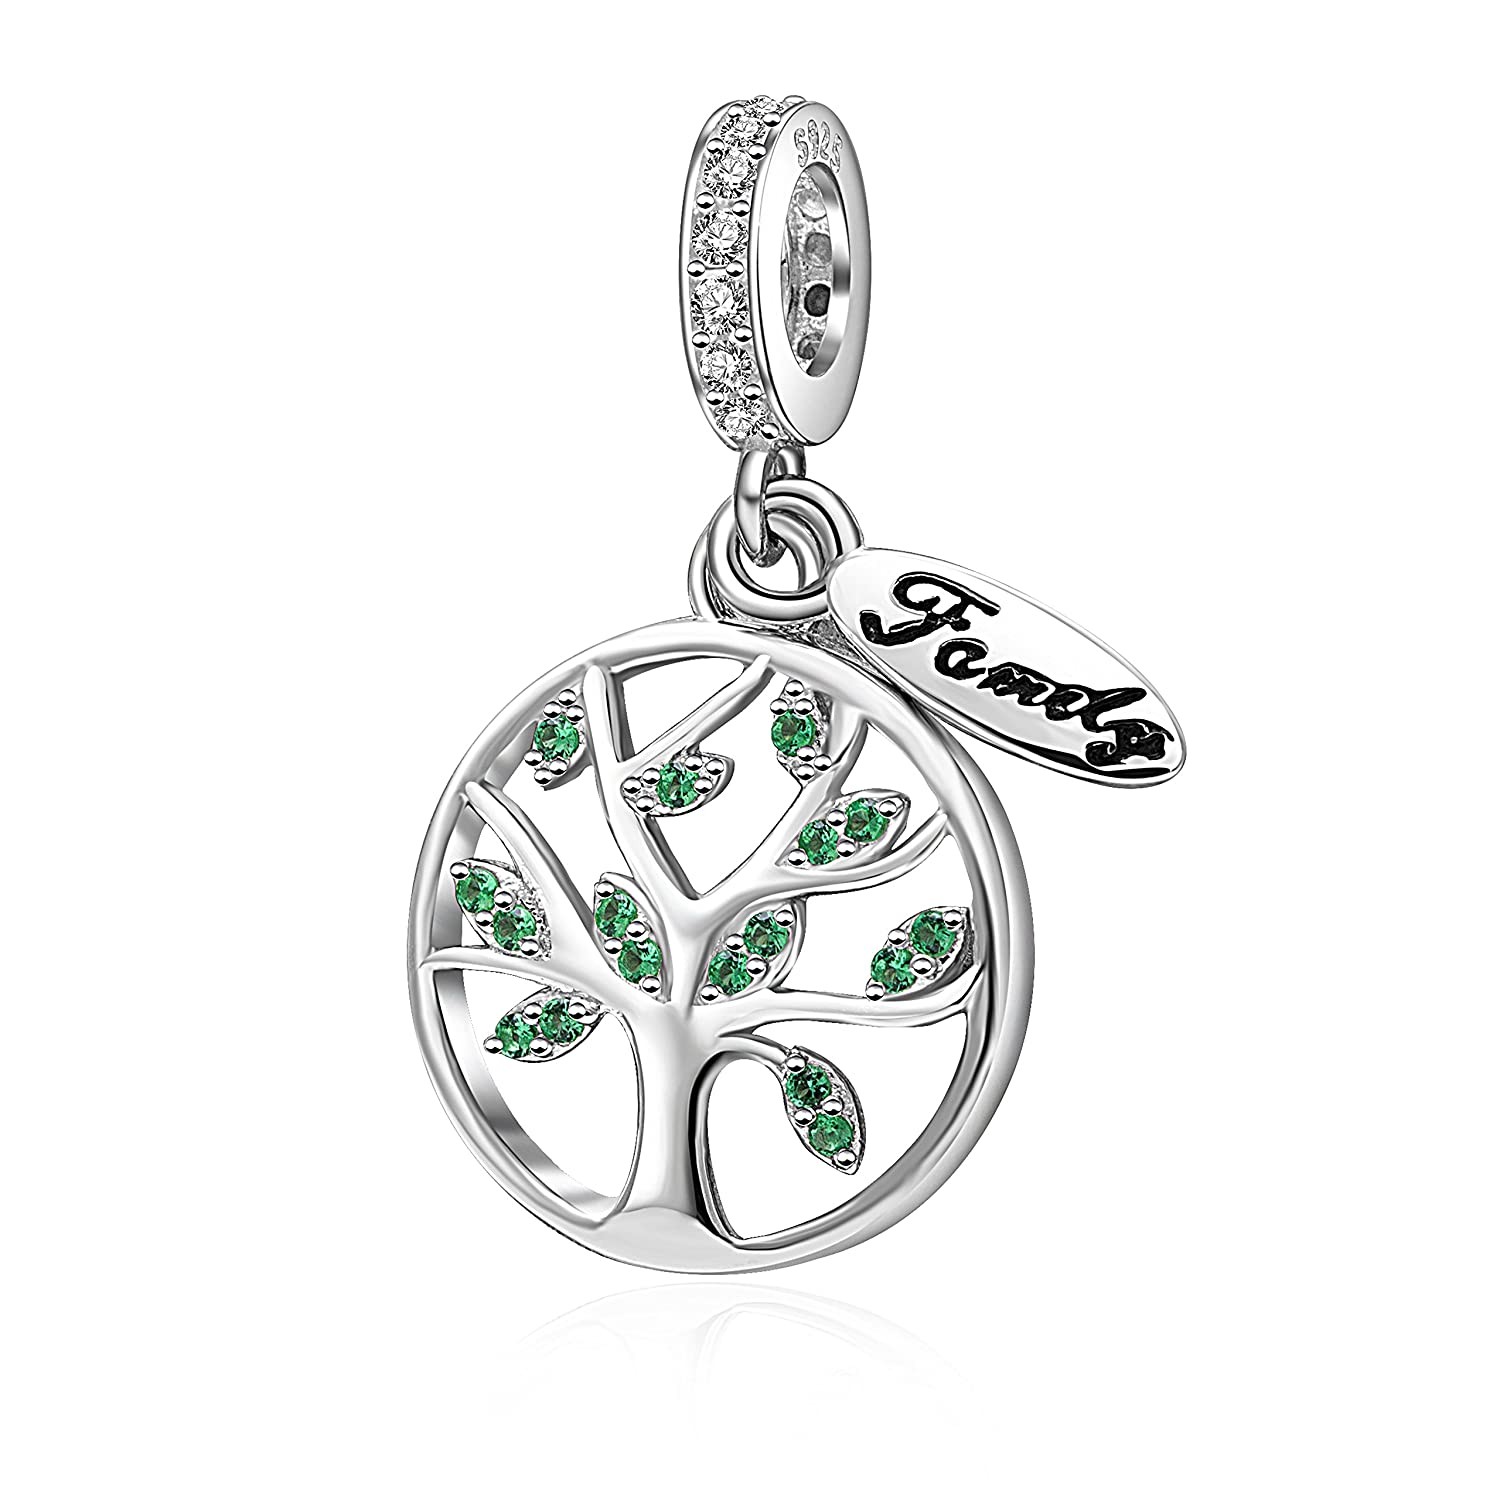 c8a701ff6 Hoobeads Tree of Life Charms Pendant Authentic 925 Sterling Silver Family  Tree Bead for European Bracelet